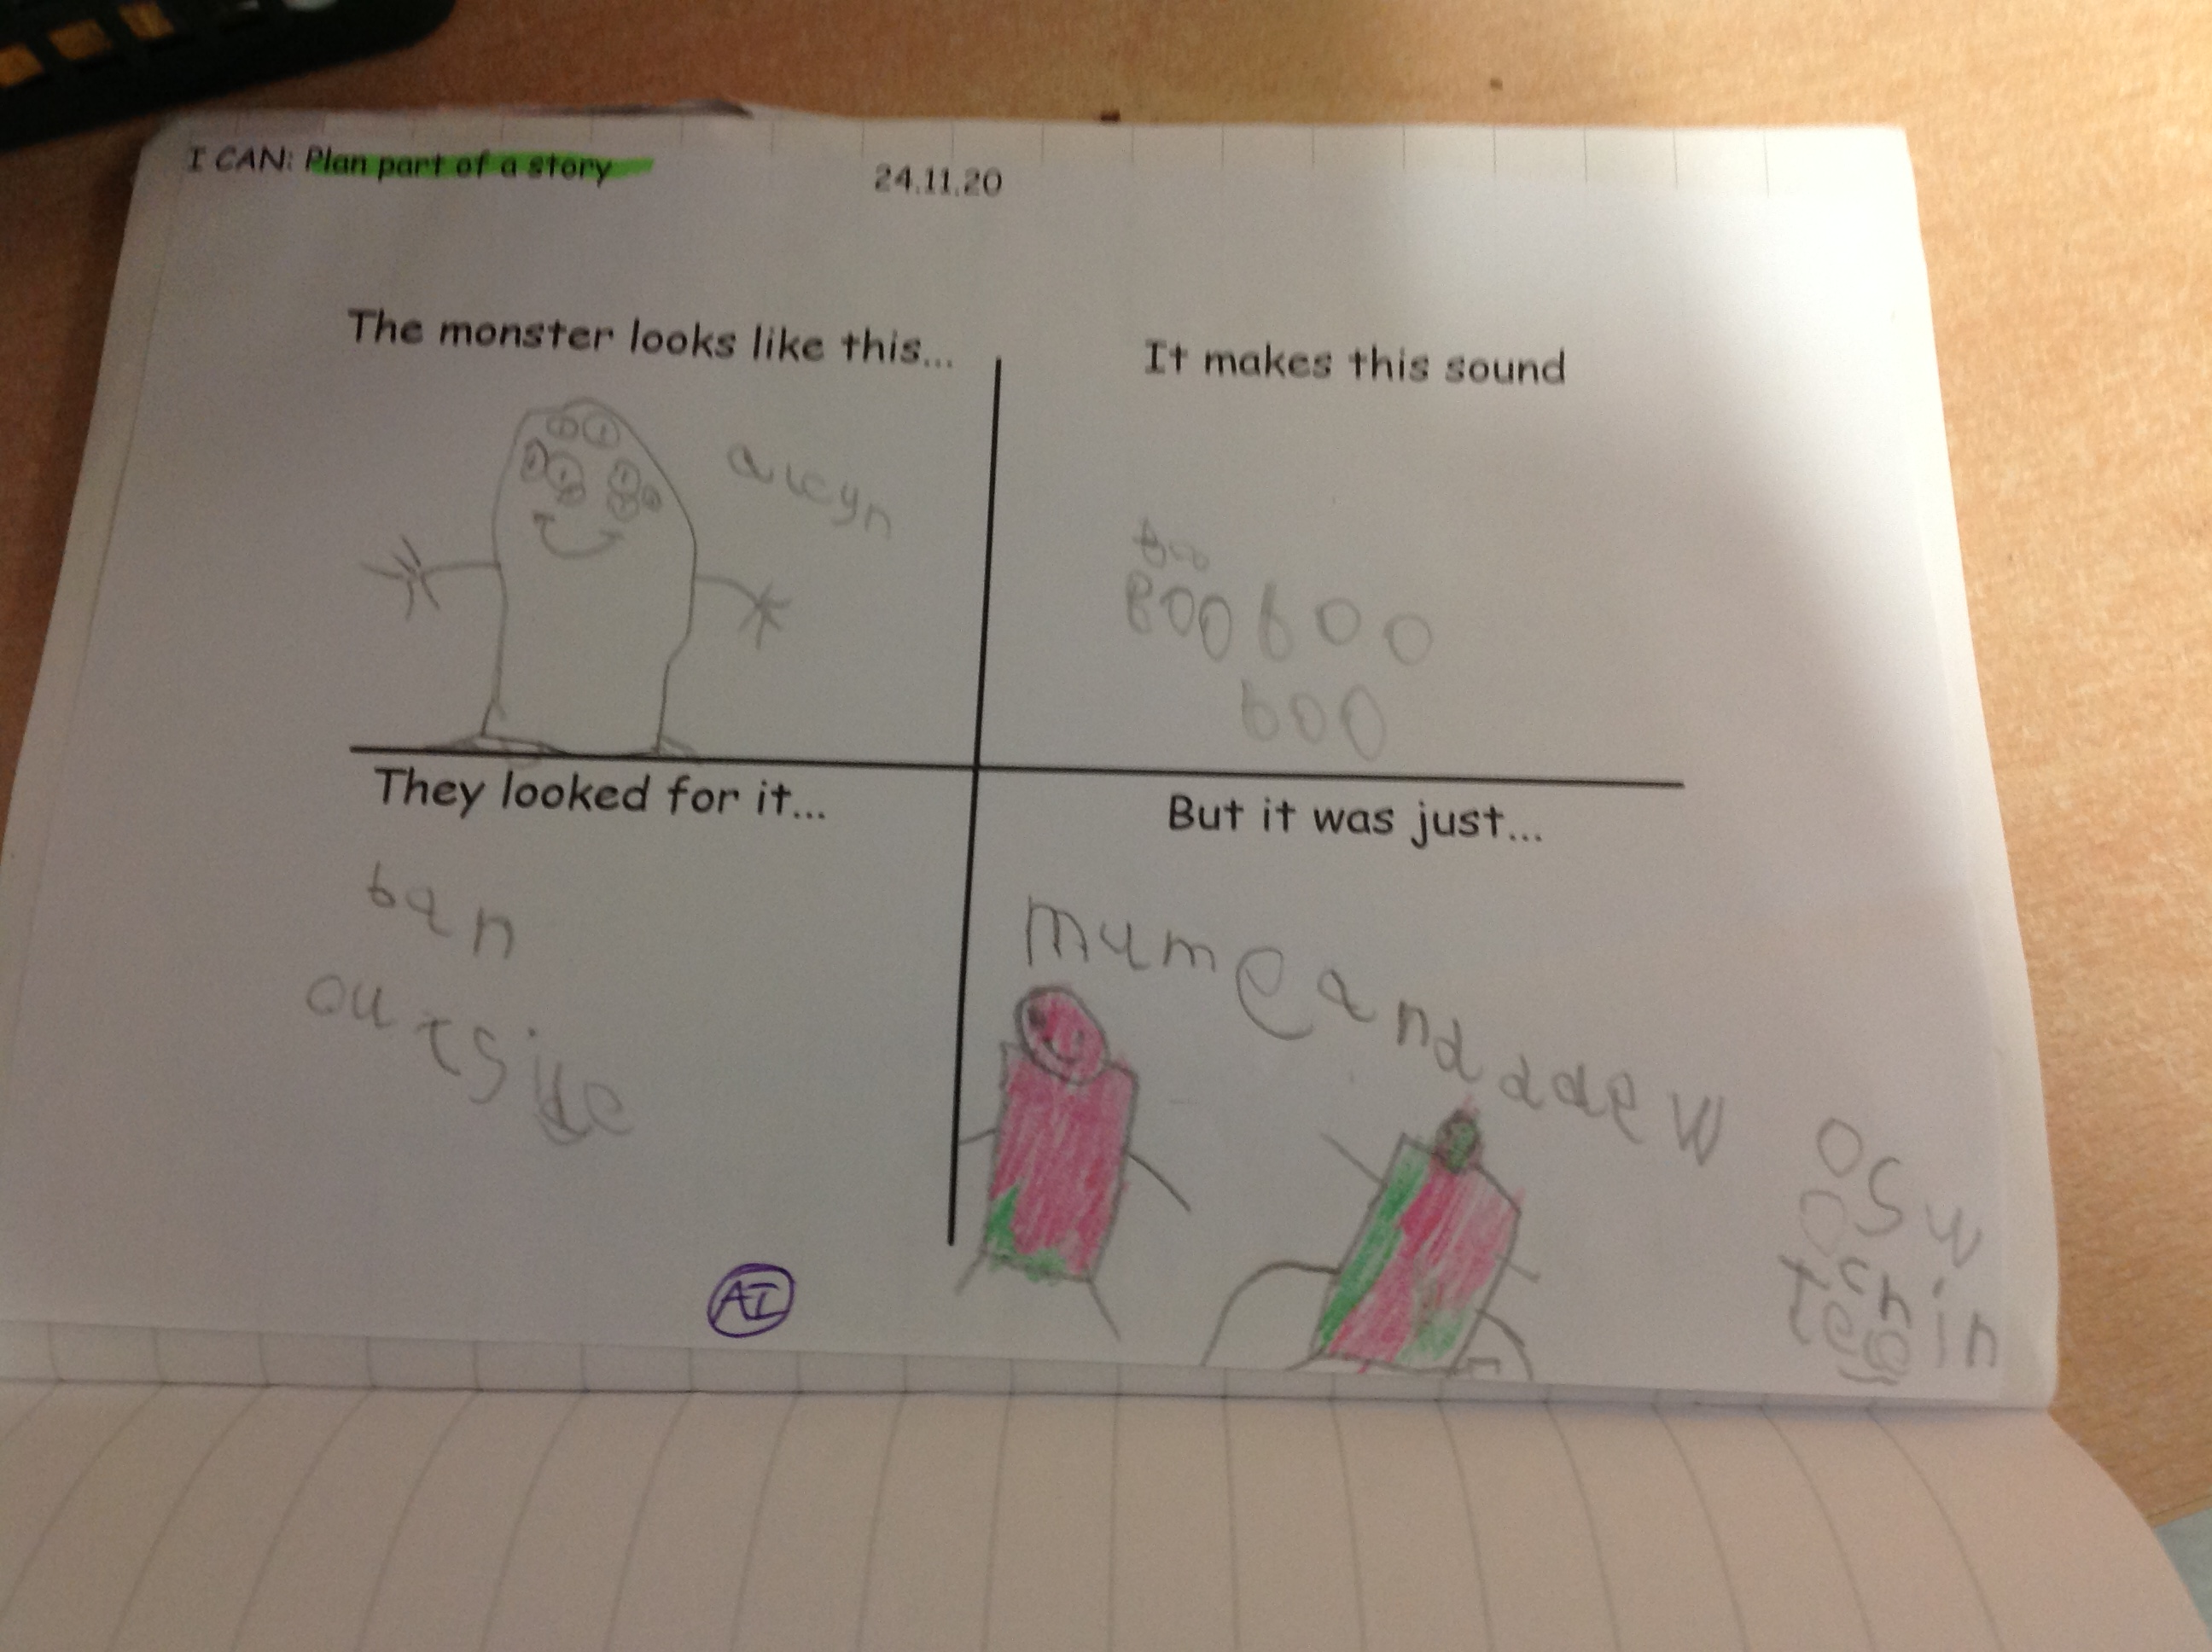 Tyler's excellent story plan!